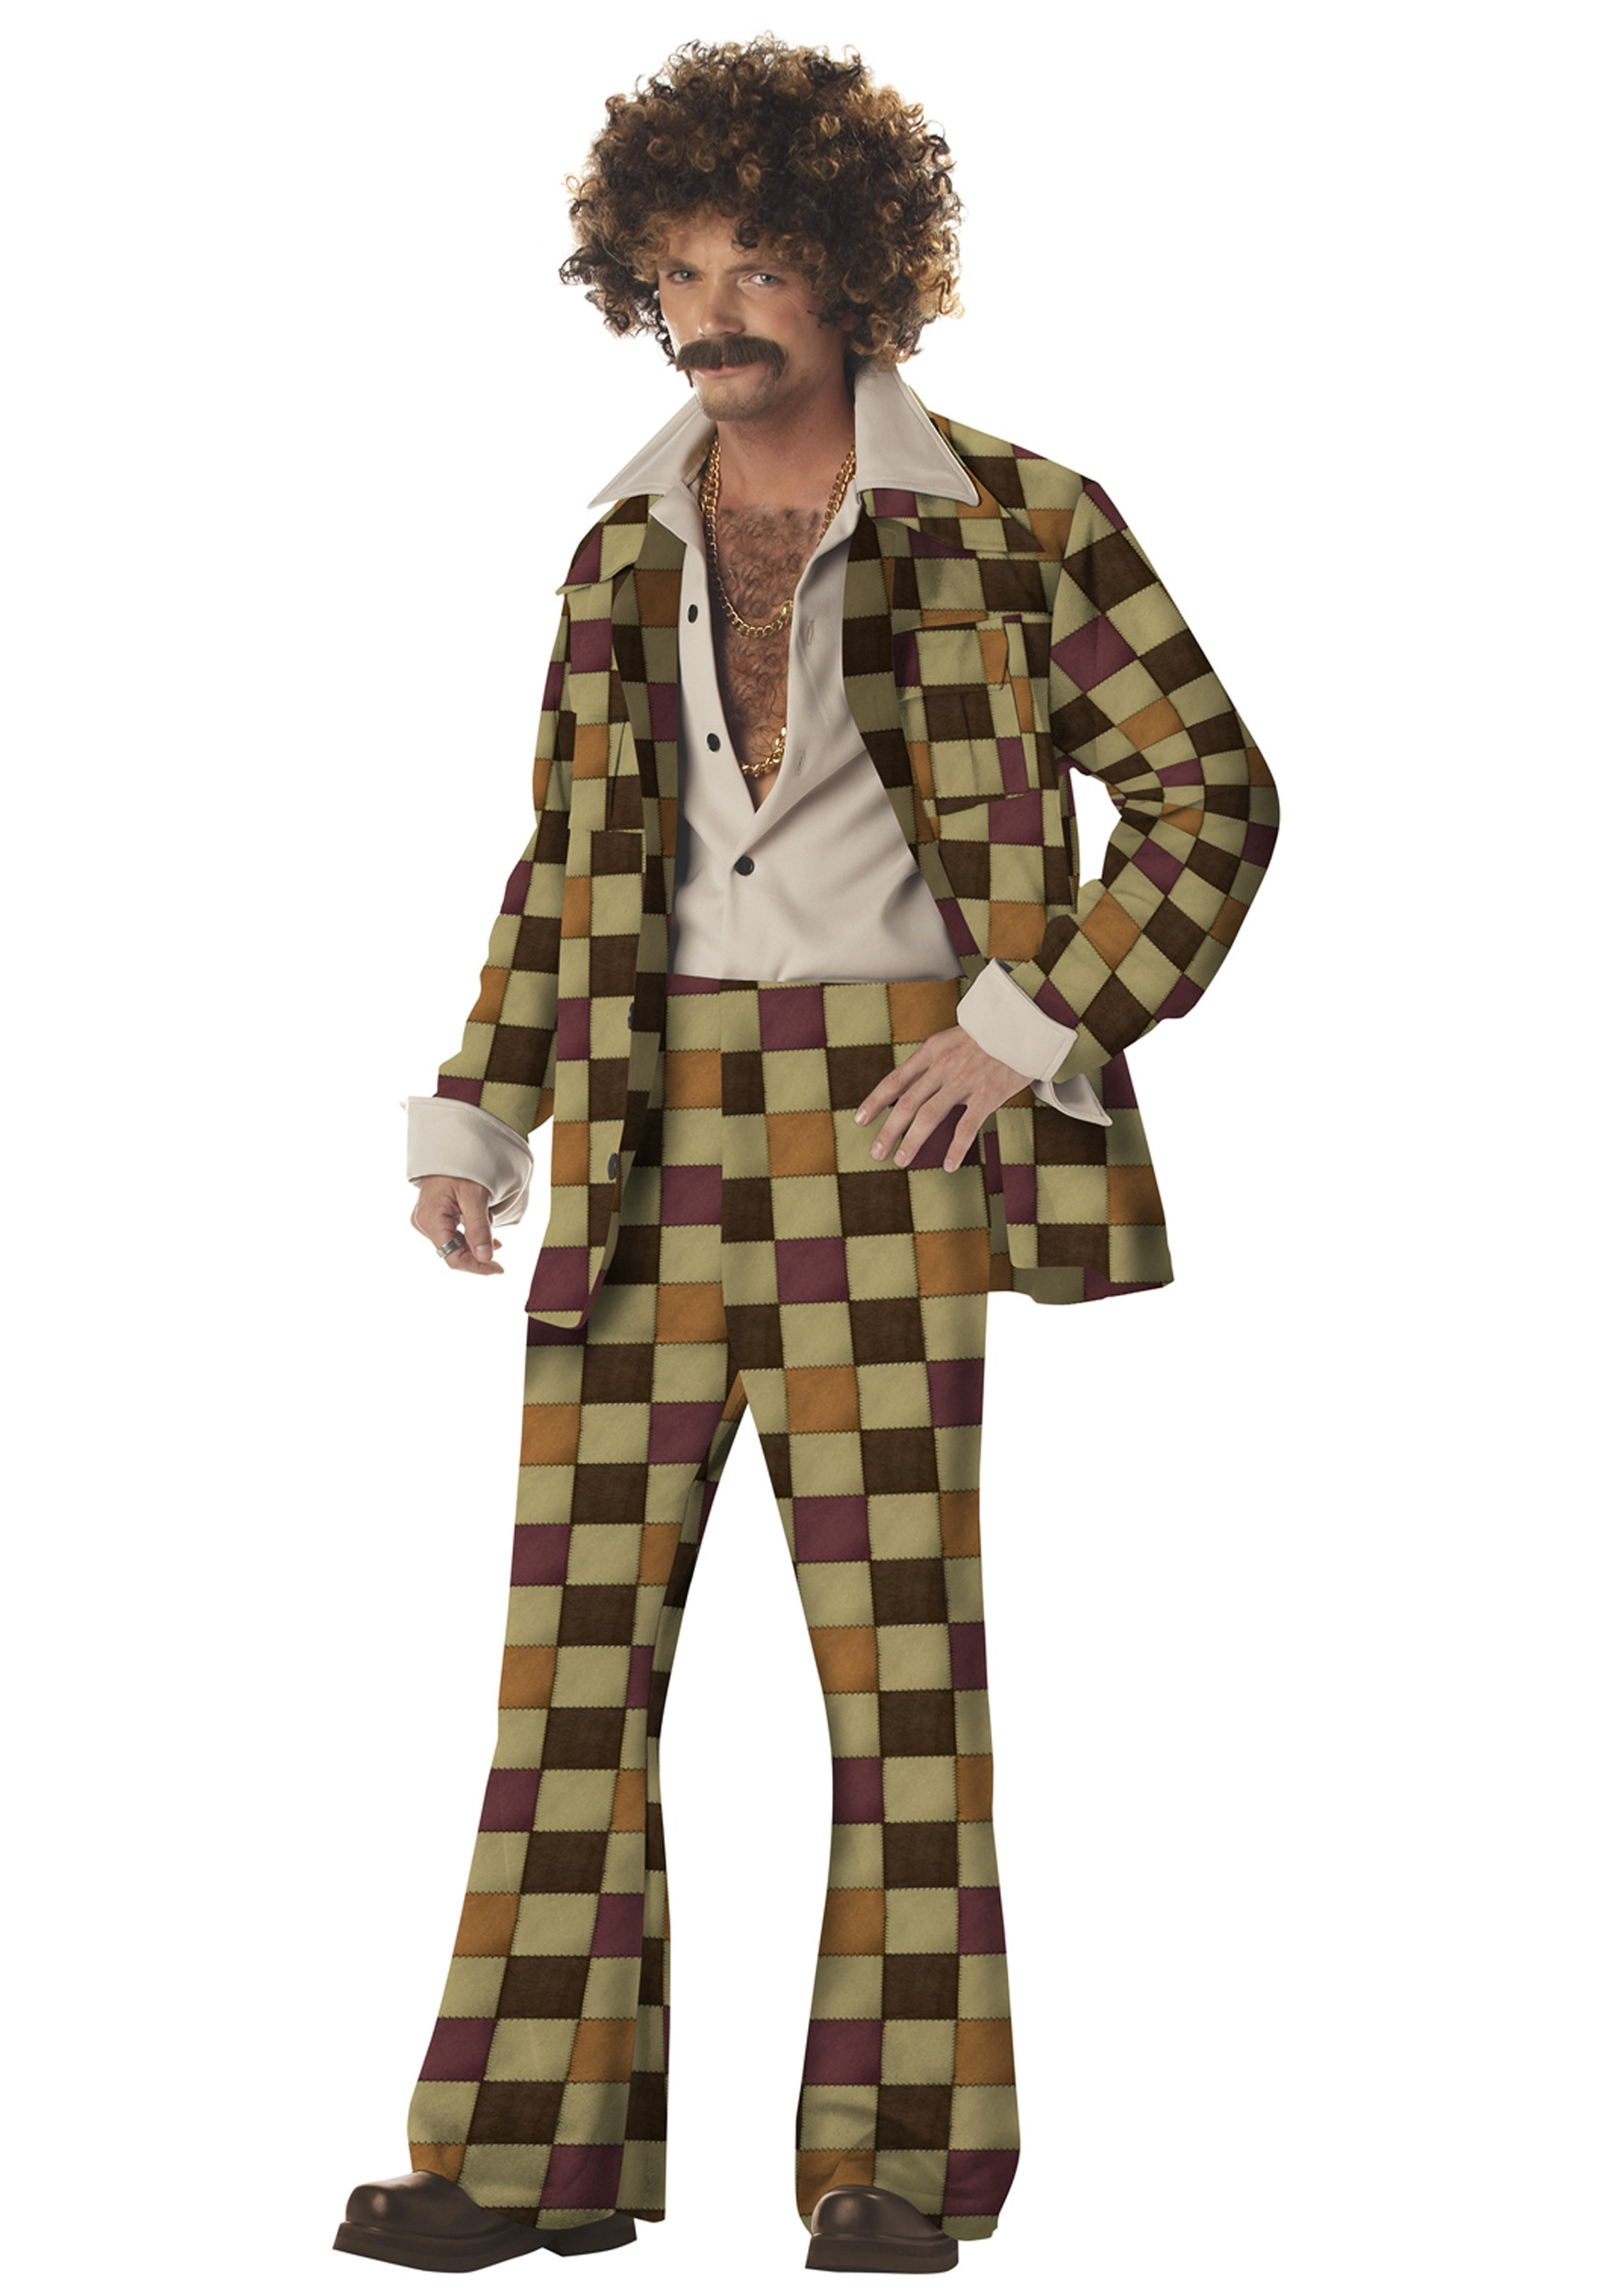 disco-leisure-suit-costume.jpg